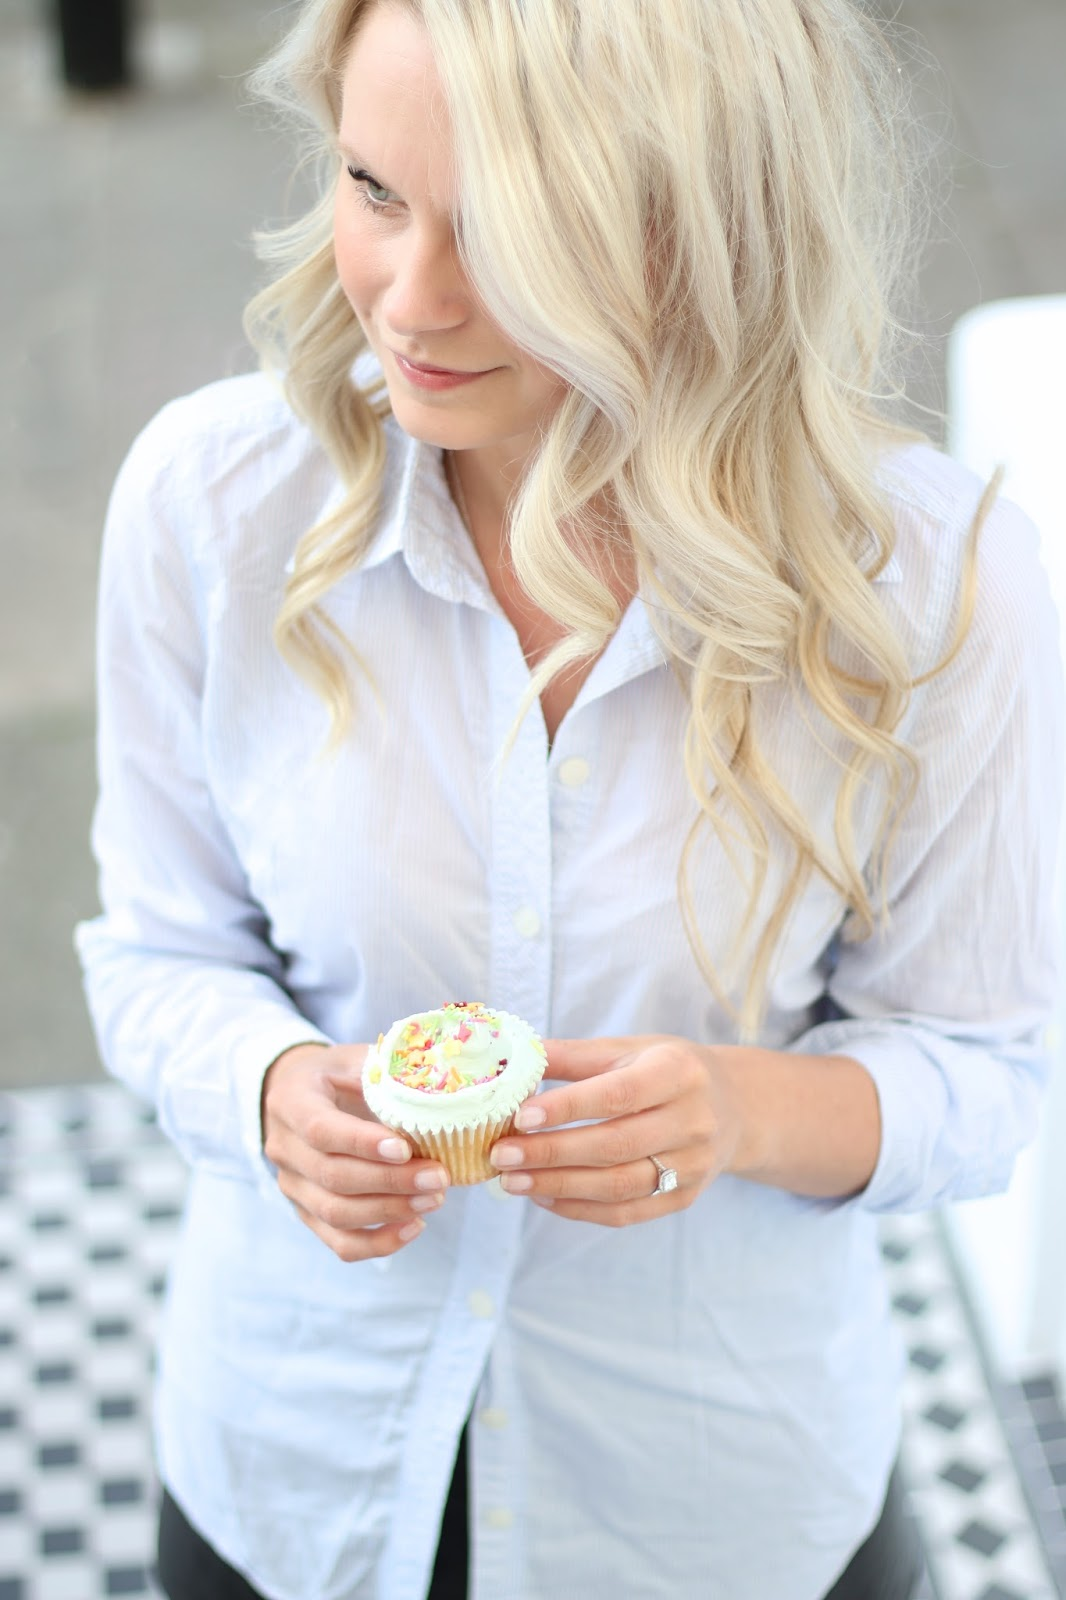 a blue collar shirt and a cupcake taken with a canon 70d camera